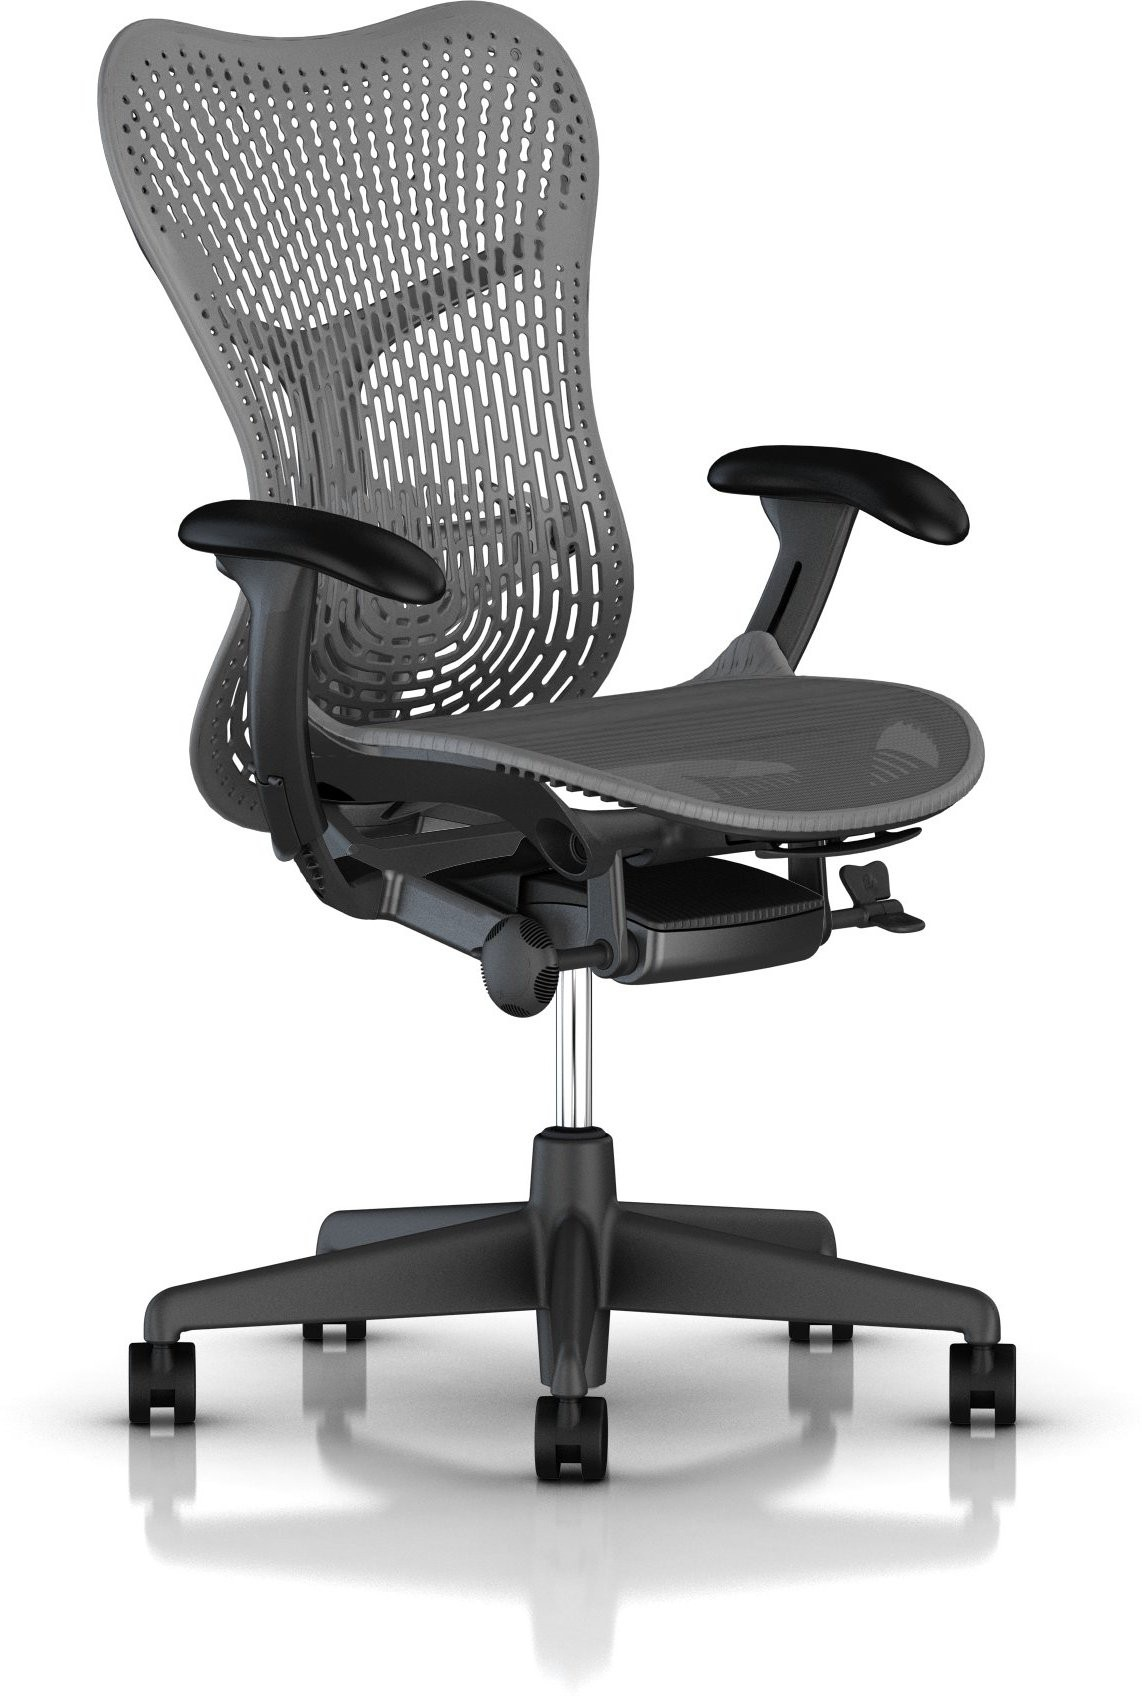 View HermanMiller Mirra 2 - Slate Grey Triflex back : Slate Grey Seat : Triflex Polymer NA Office Chair(Black) Furniture (HermanMiller)